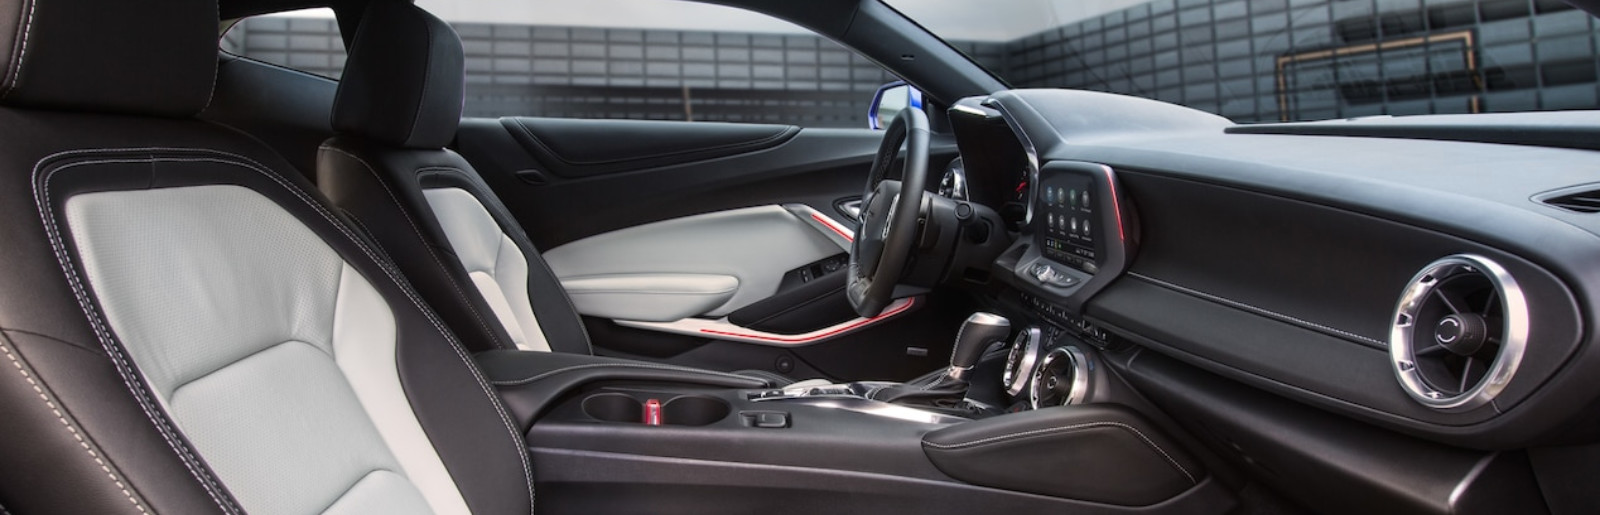 Seating in the 2019 Camaro